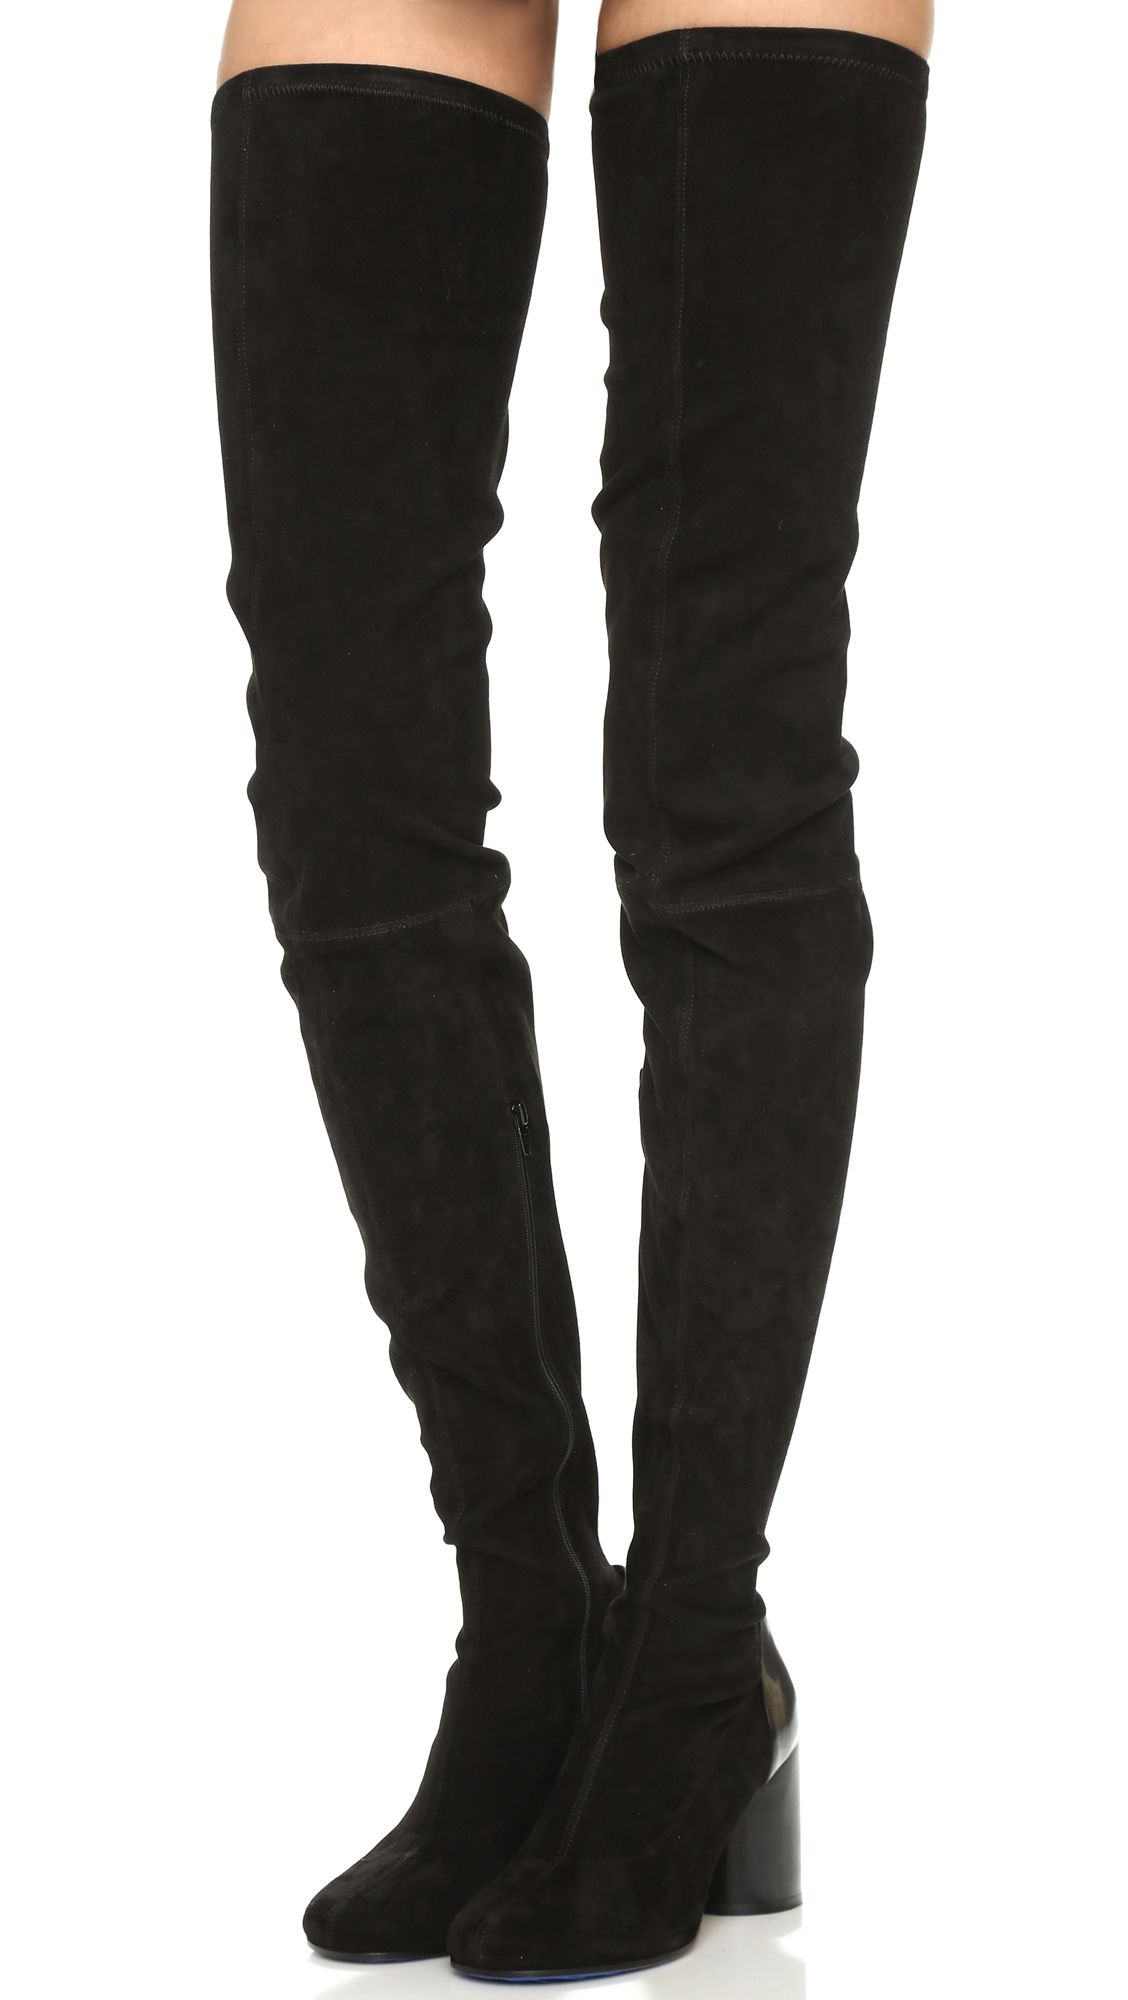 Maison Margiela Denim Knee-High Boots clearance latest 2014 new for sale discount hot sale mVwSoYXL07